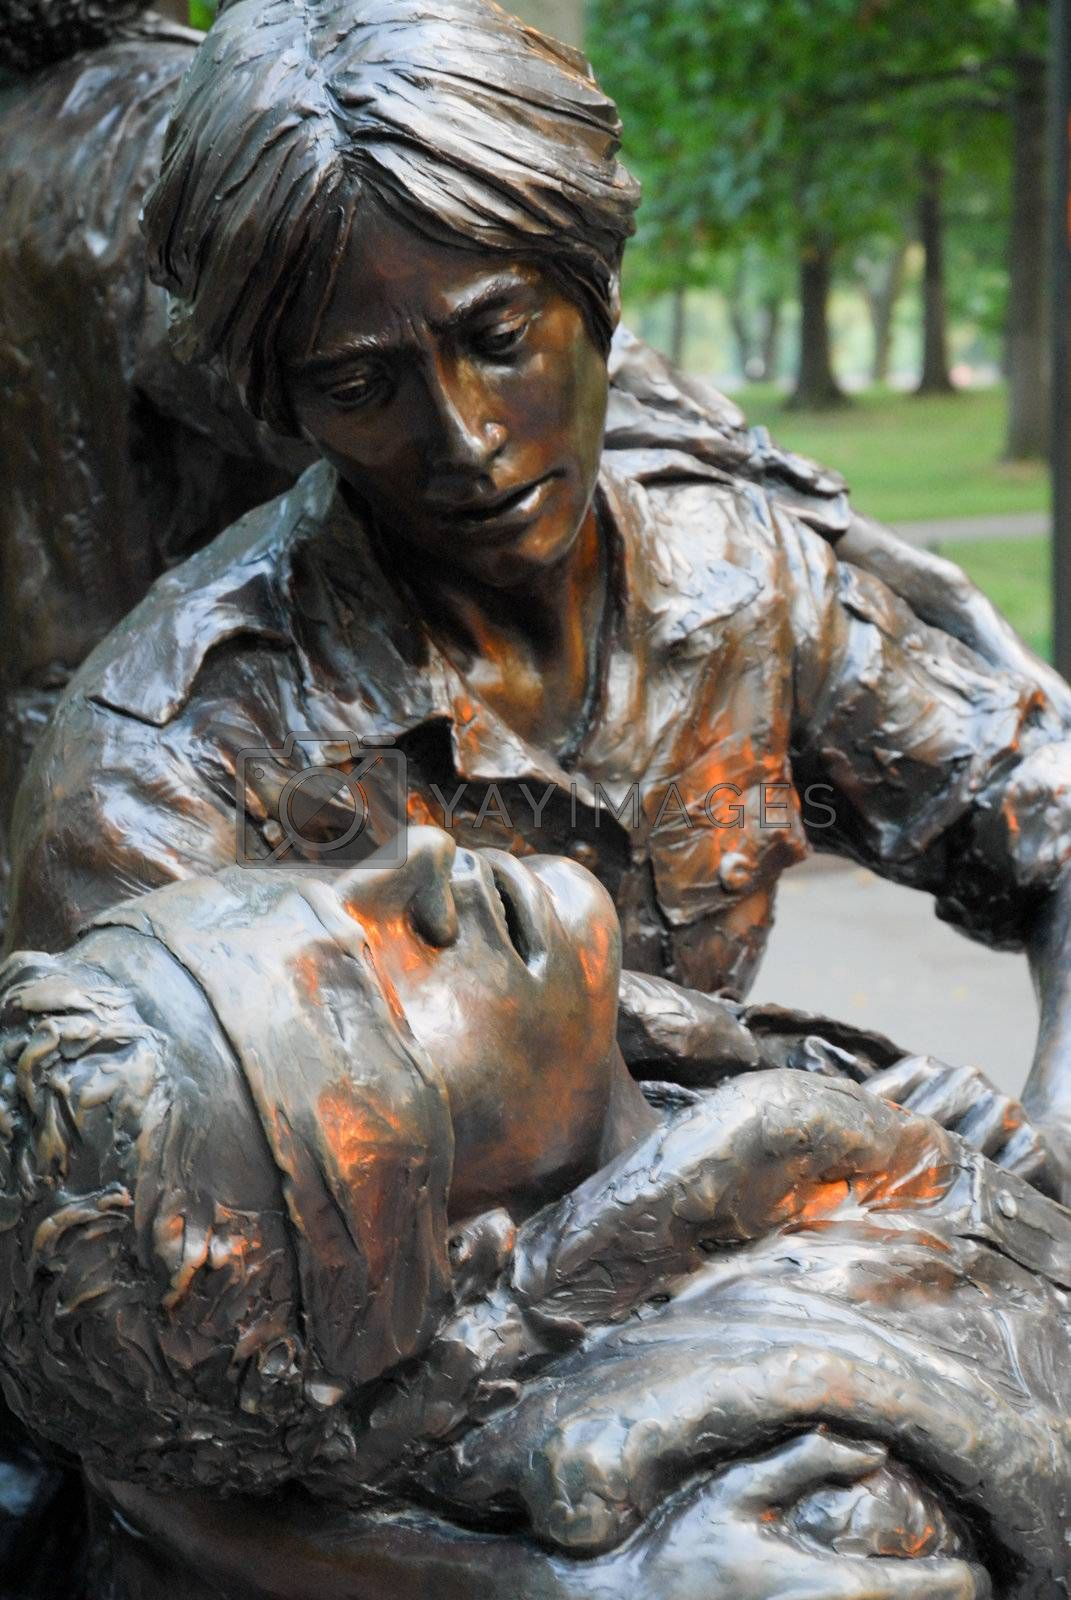 Statue of Nurse Caring for Wounded Soldier Royalty Free Stock Image | Stock  Photos, Royalty Free Images, Vectors, Footage | Yayimages